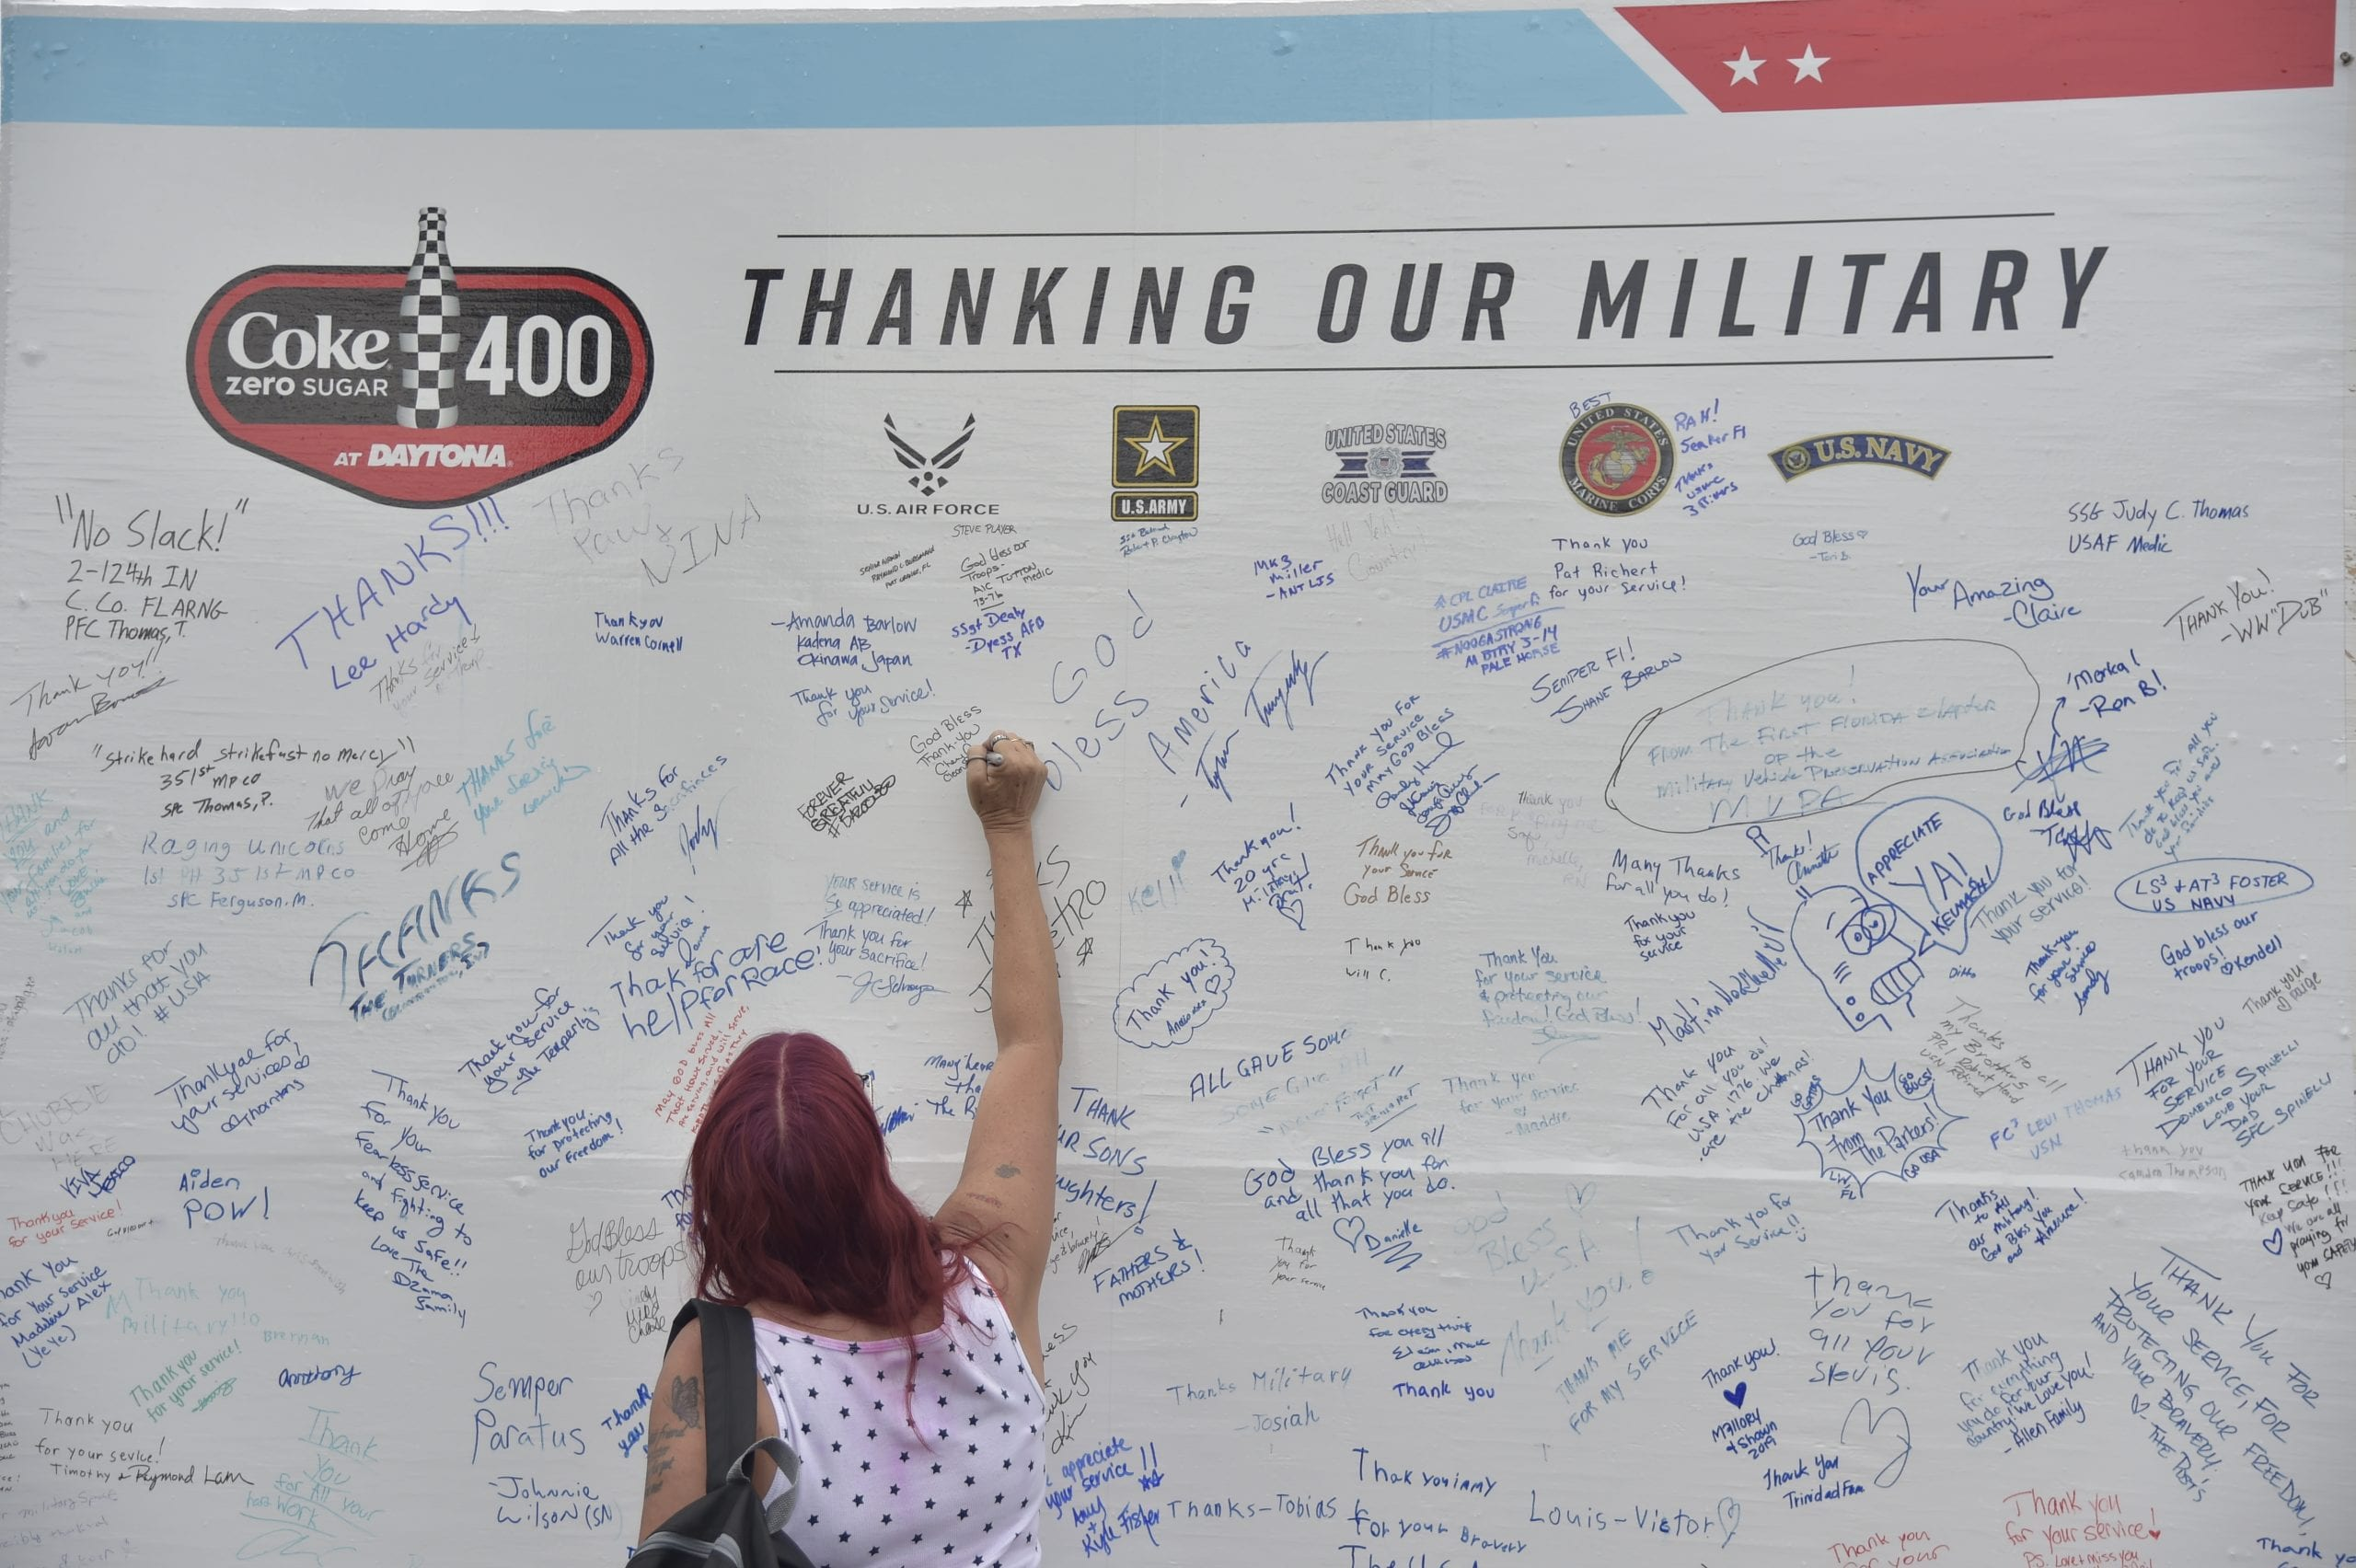 DAYTONA BEACH, FLORIDA - JULY 06: The NASCAR Salutes branding on the activation, military during the Monster Energy NASCAR Cup Series Coke Zero Sugar 400 at Daytona International Speedway on July 06, 2019 in Daytona Beach, Florida. (Photo by Jeff Curry/Getty Images) | Getty Images